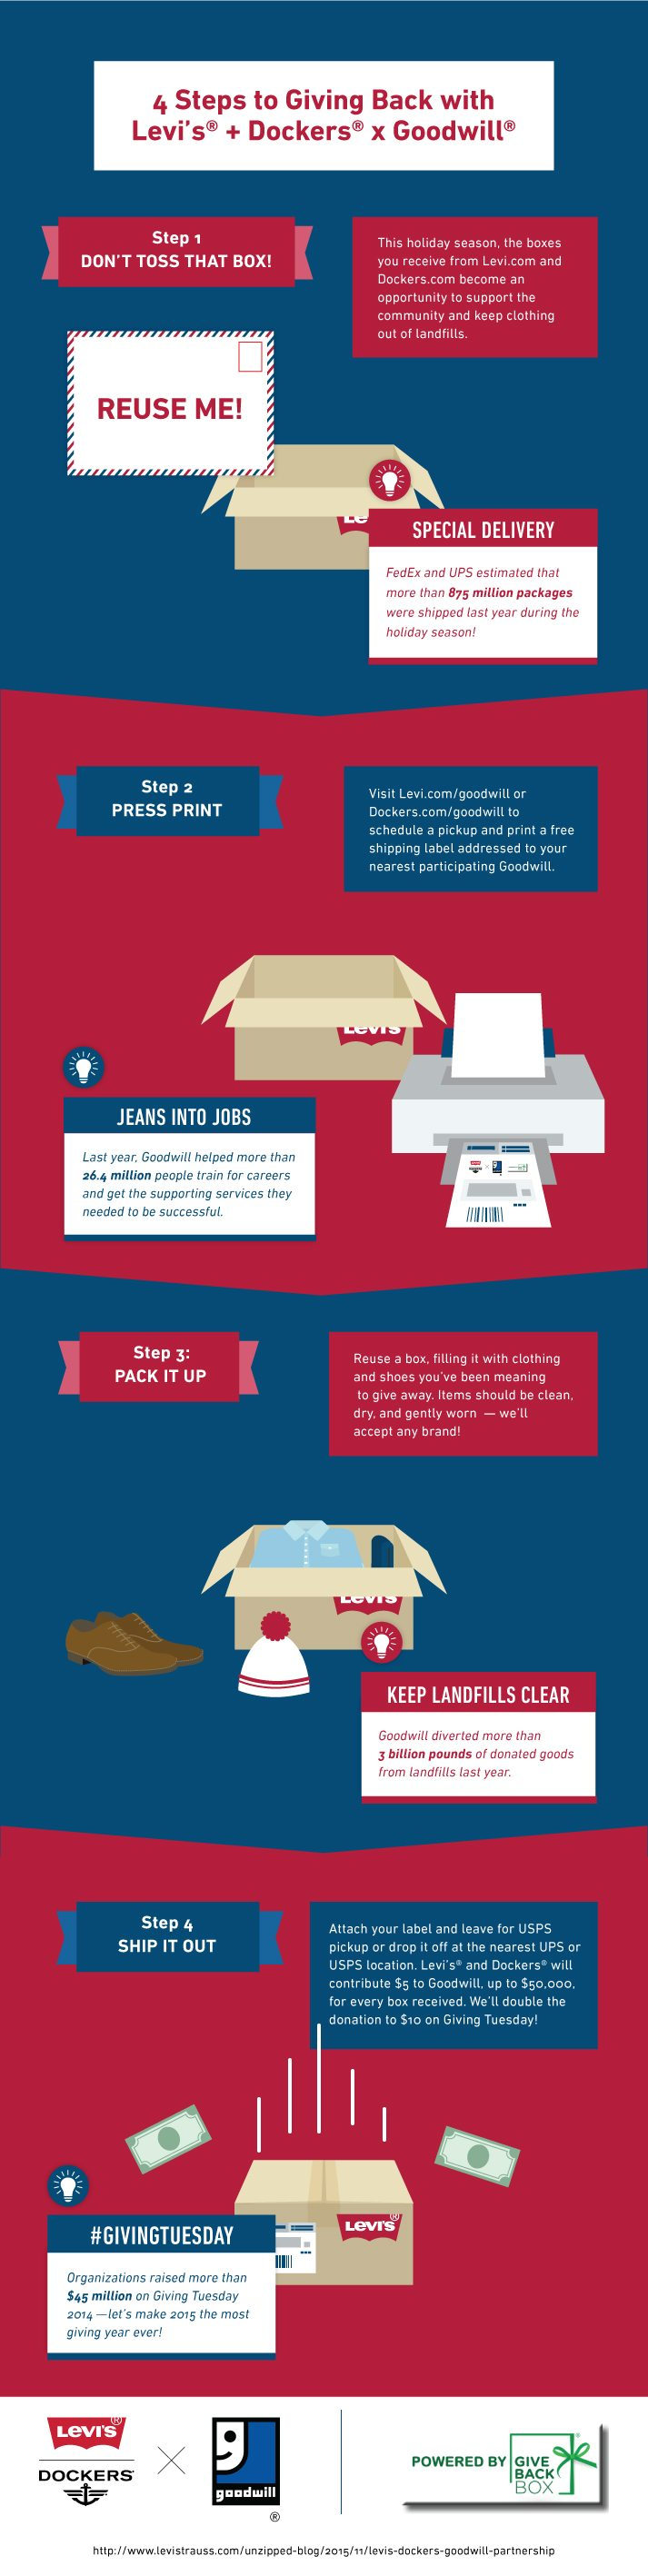 151117-Goodwill-staticinfographic[2] (1)